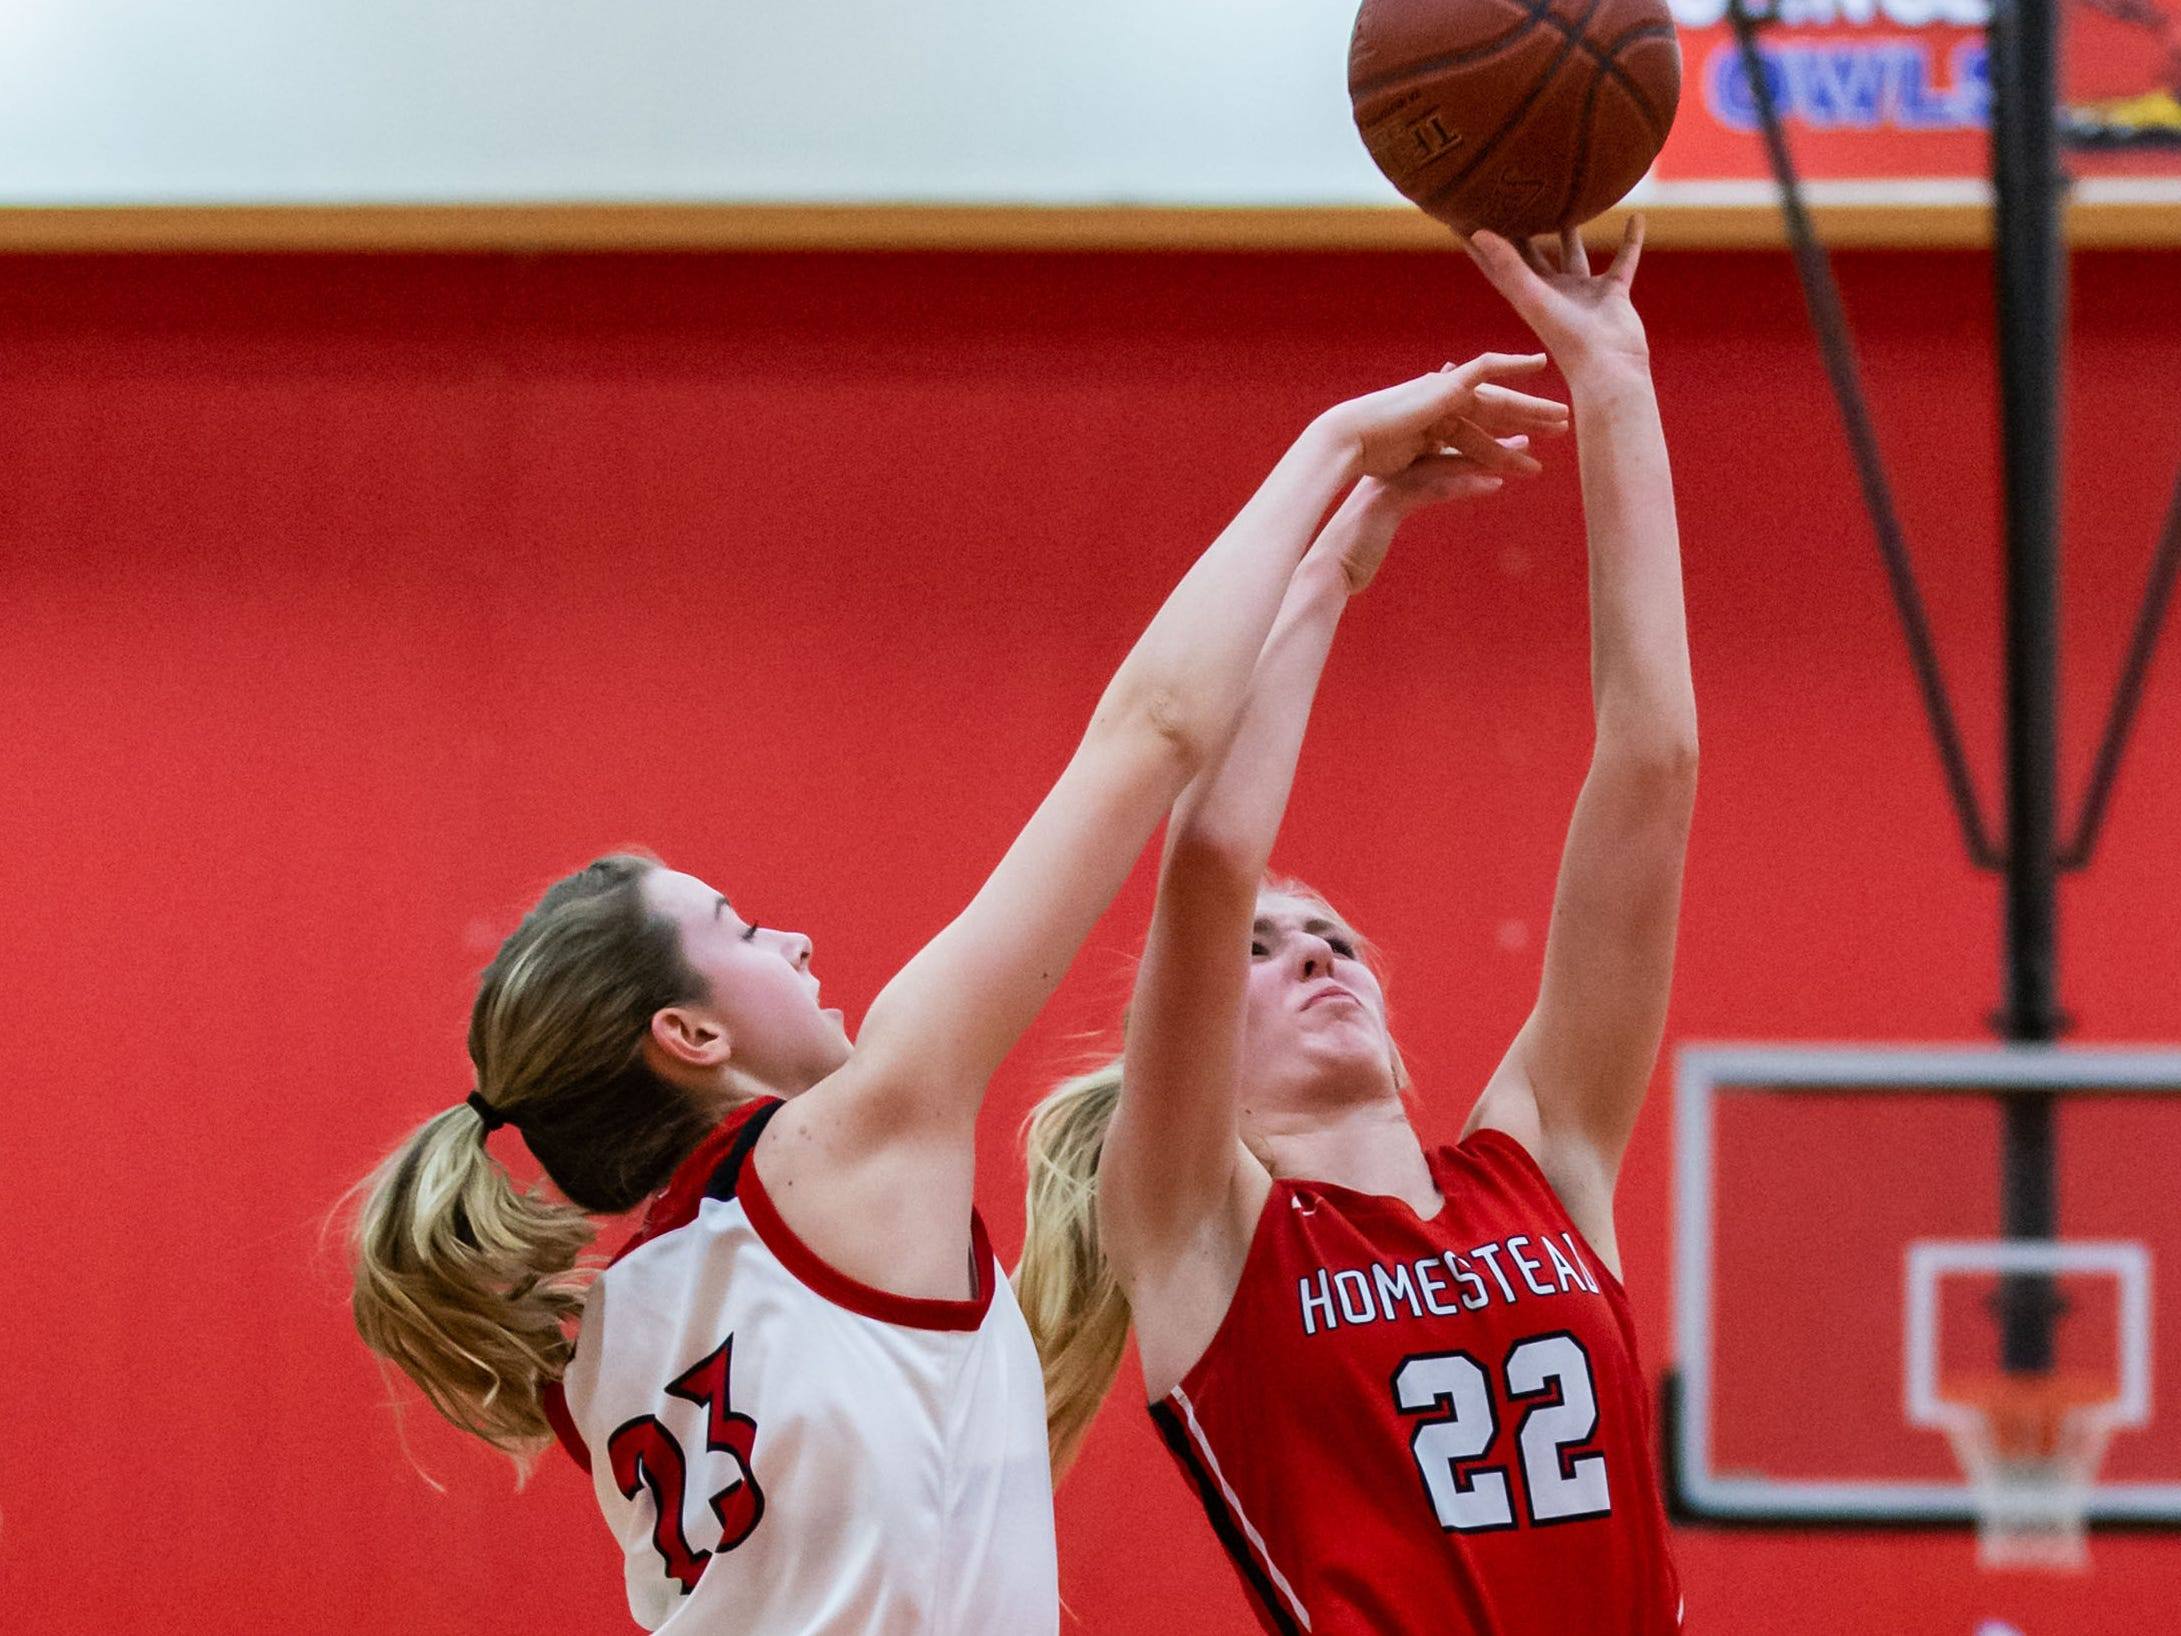 Homestead's Sam Crivello (22) gets a shot past Slinger's Kate Hosking (23) during the game at Slinger on Friday, Jan. 11, 2019.